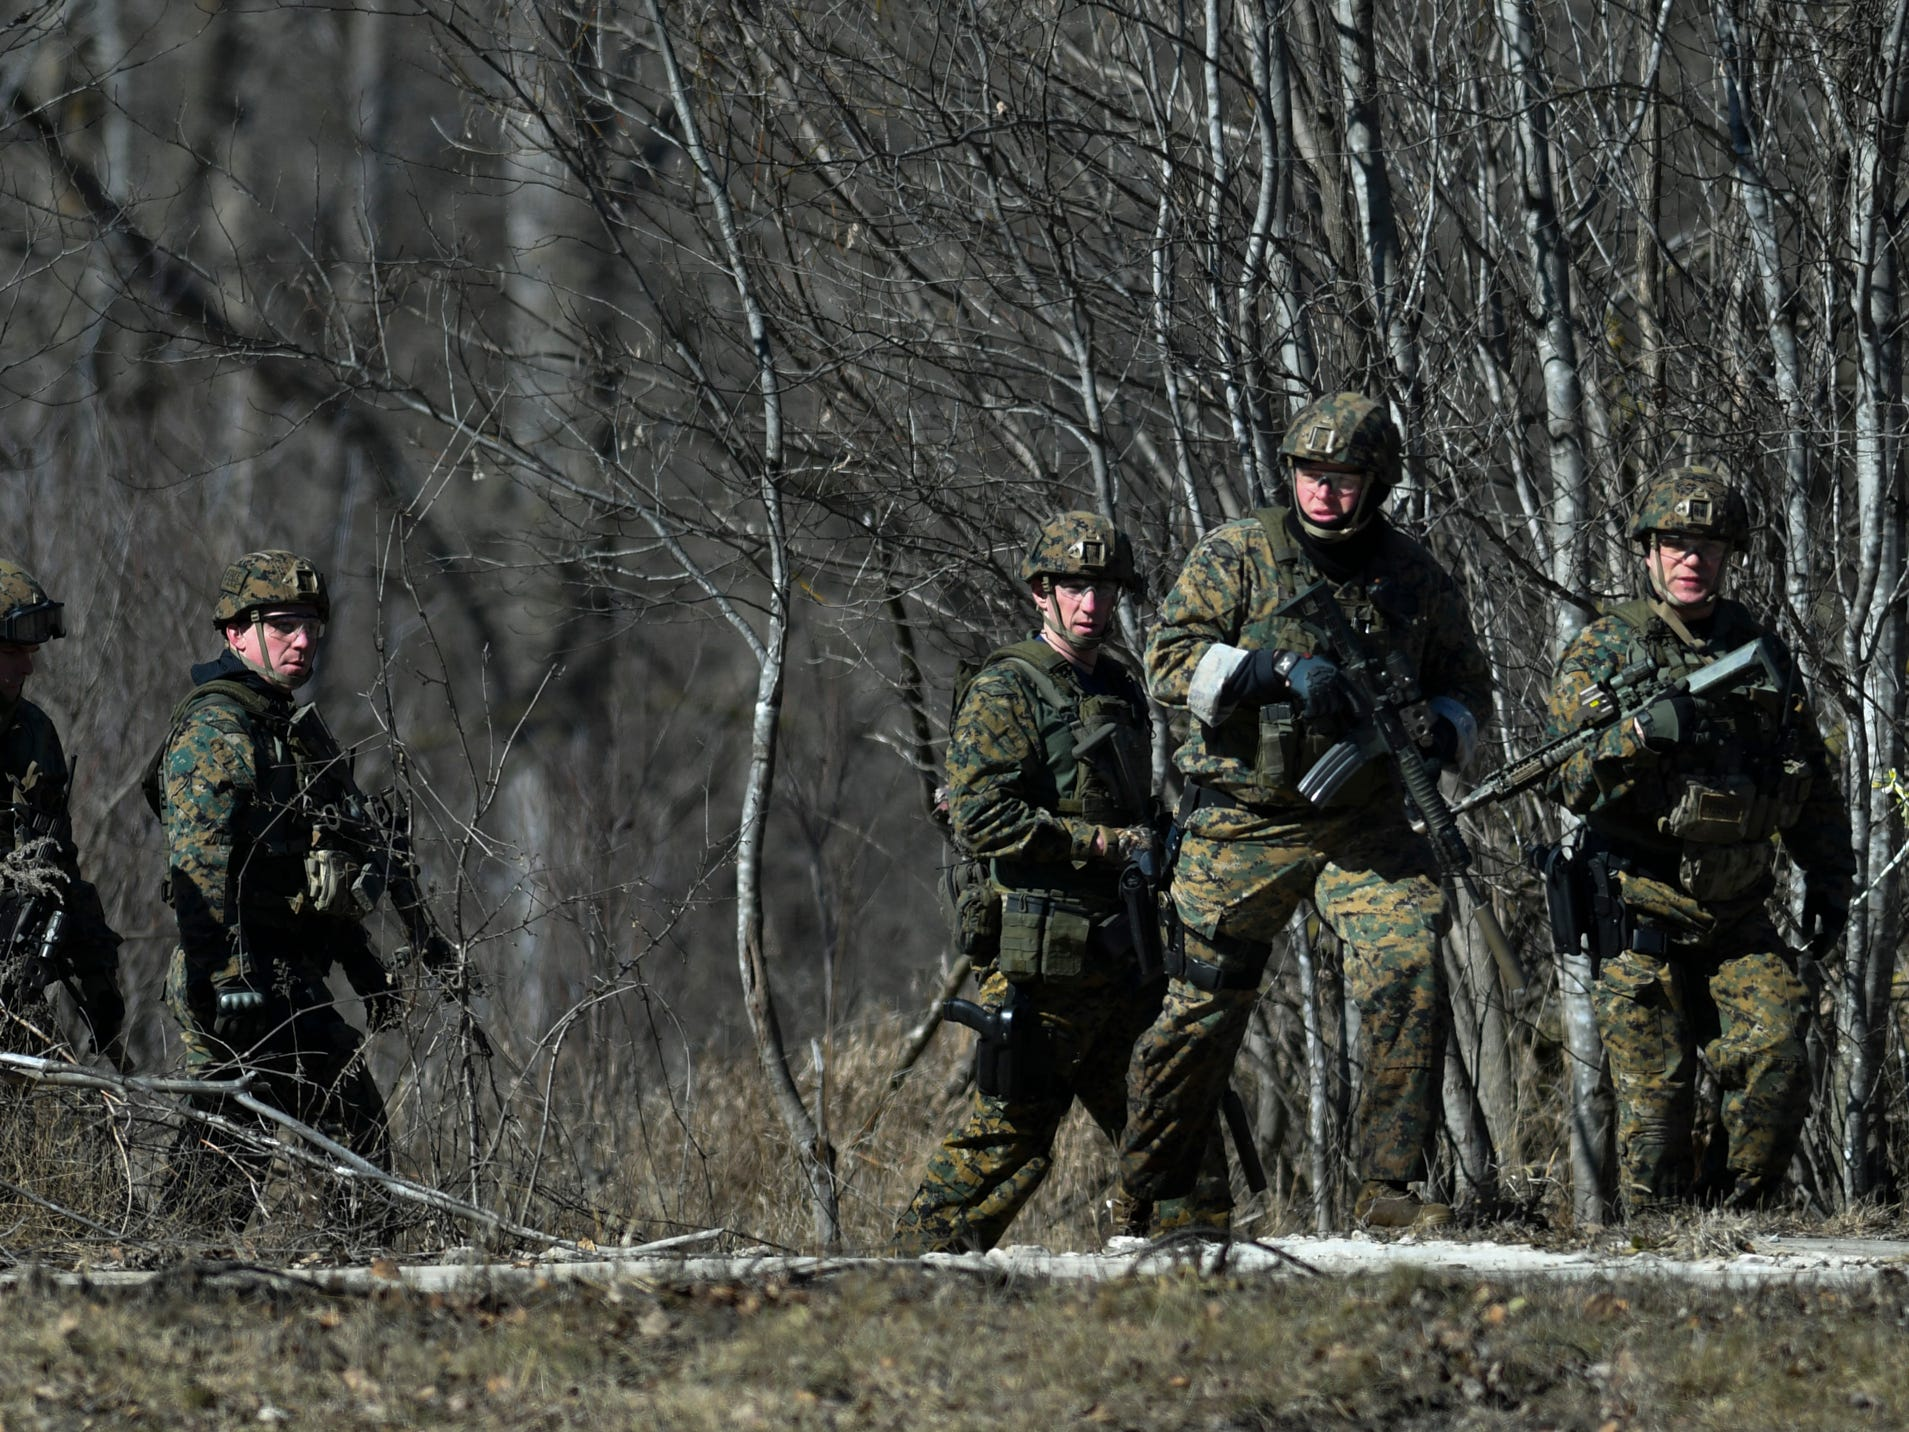 Members of the Michigan State Police ES (Emergency Support) Team search a wooded area on a dead end road near the corner of Oak and Maple in Mt. Pleasant, Friday, March 2, 2018, for a man who shot and killed his parents at a residence hall at Central Michigan University.    James Davis Jr., 19, was taken into custody early Saturday morning after a nearly daylong manhunt.